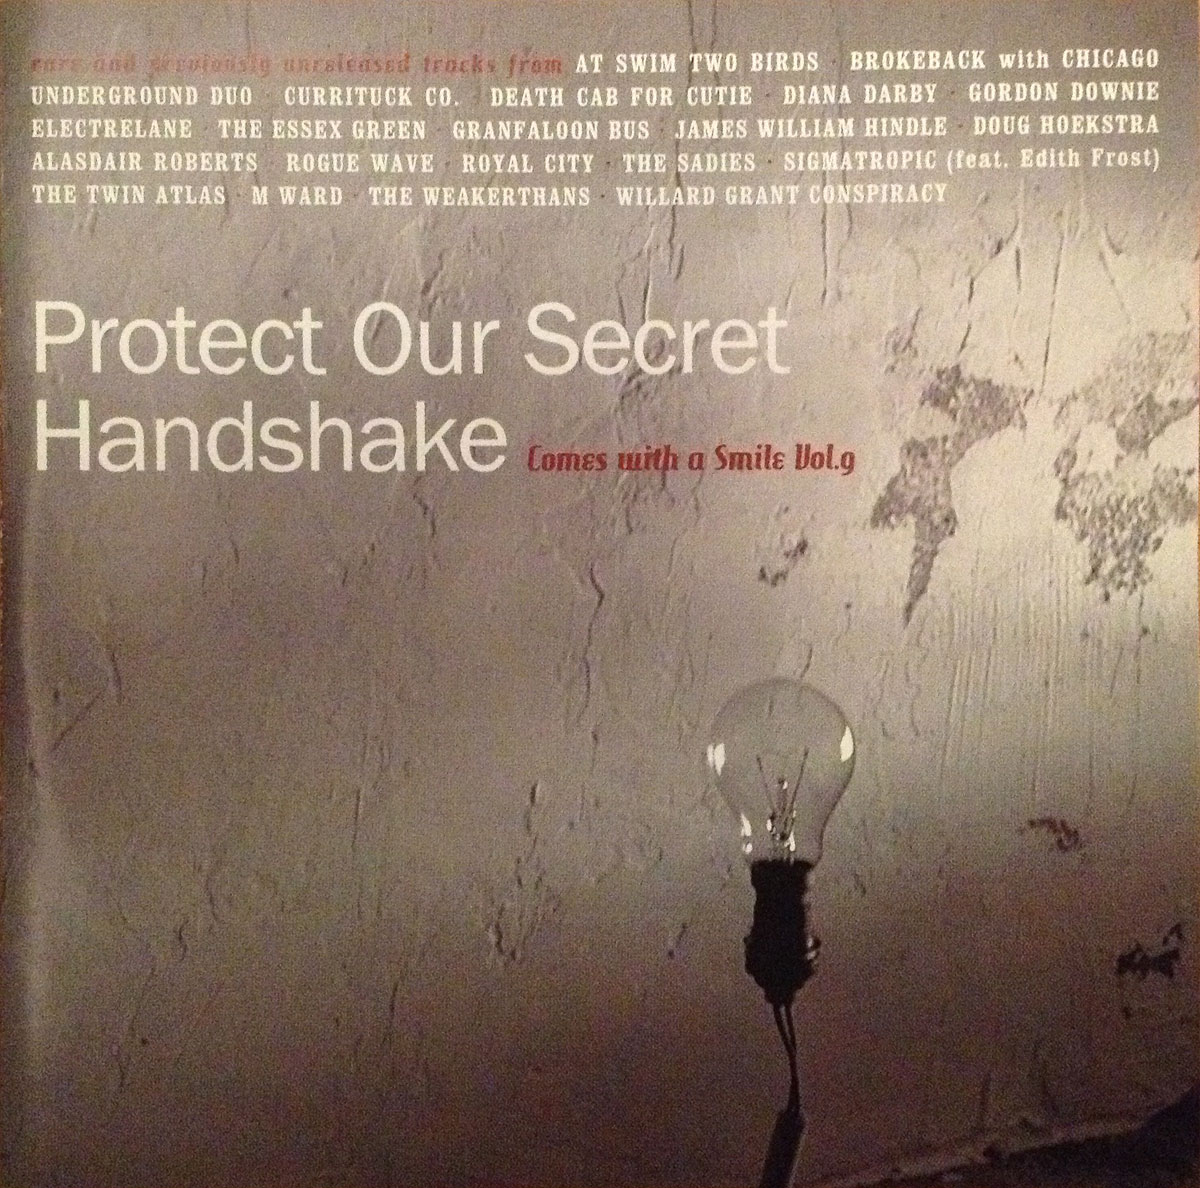 Comes with a Smile: Protect Our Secret Handshake